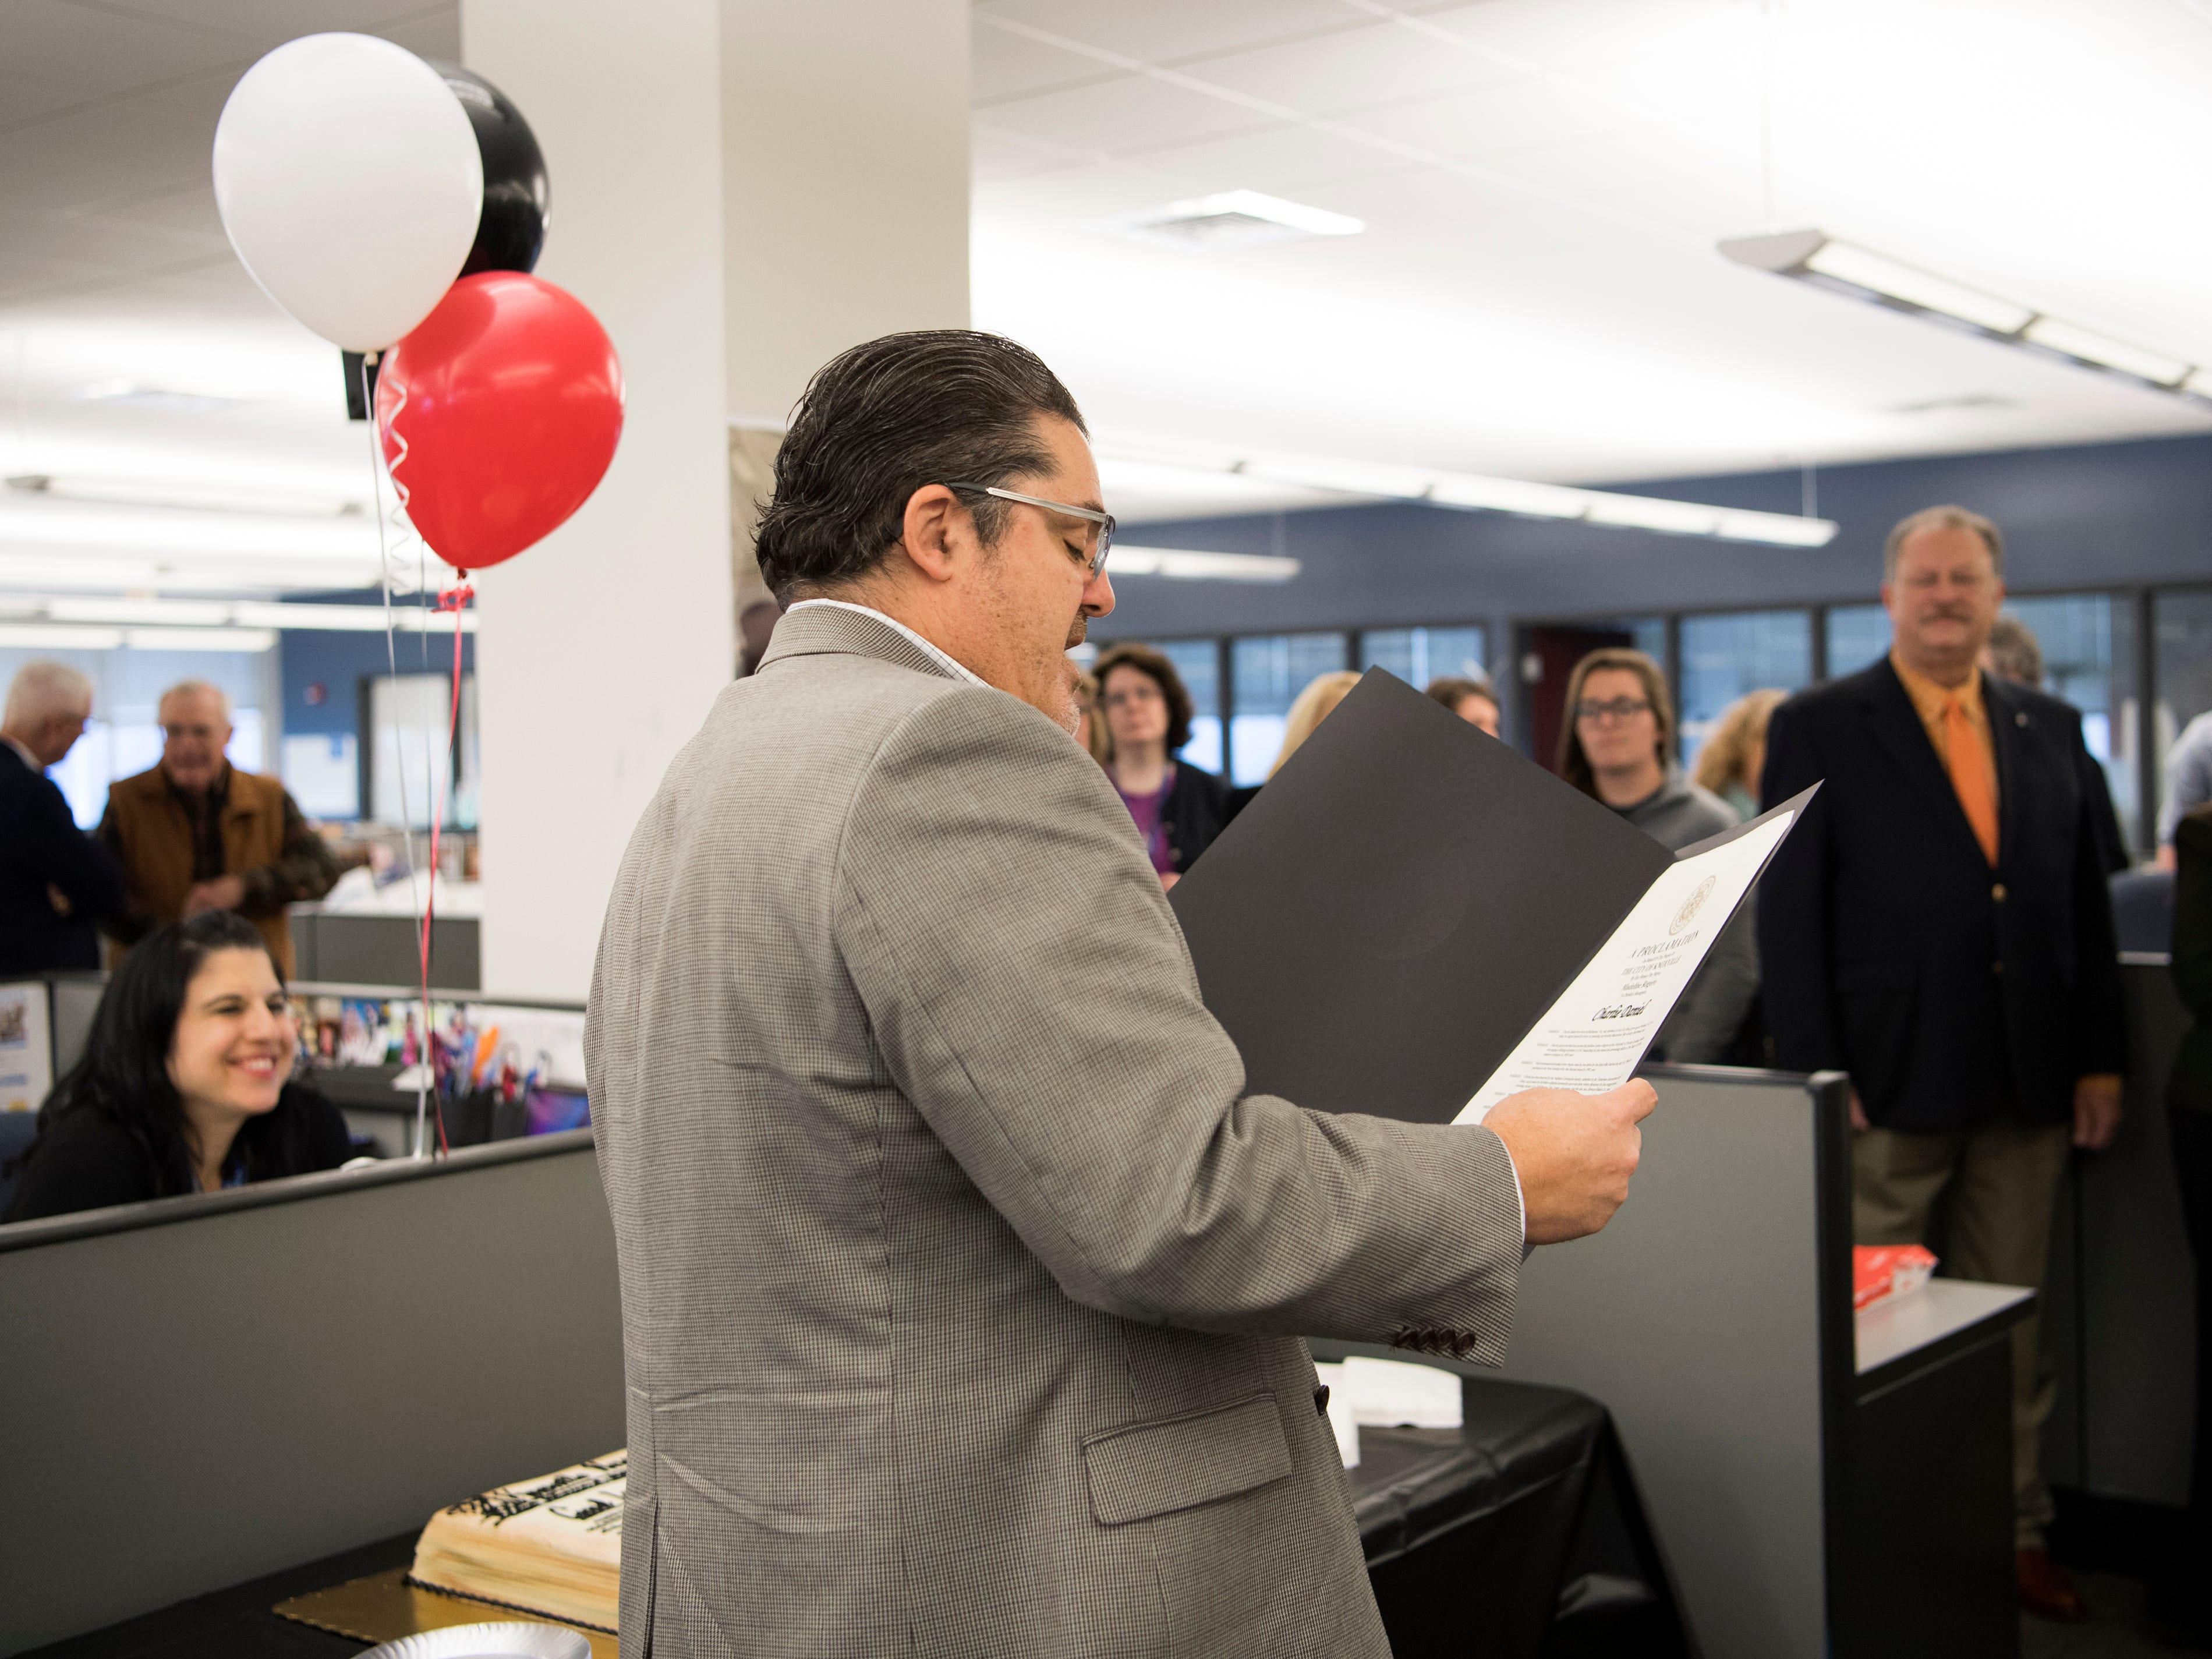 Michael Anastasi, Vice President/News for USA TODAY NETWORK Tennessee, speaks during a celebration for the retirements of executive editor Jack McElroy and cartoonist Charlie Daniel in the News Sentinel newsroom on Friday, February 1, 2019.